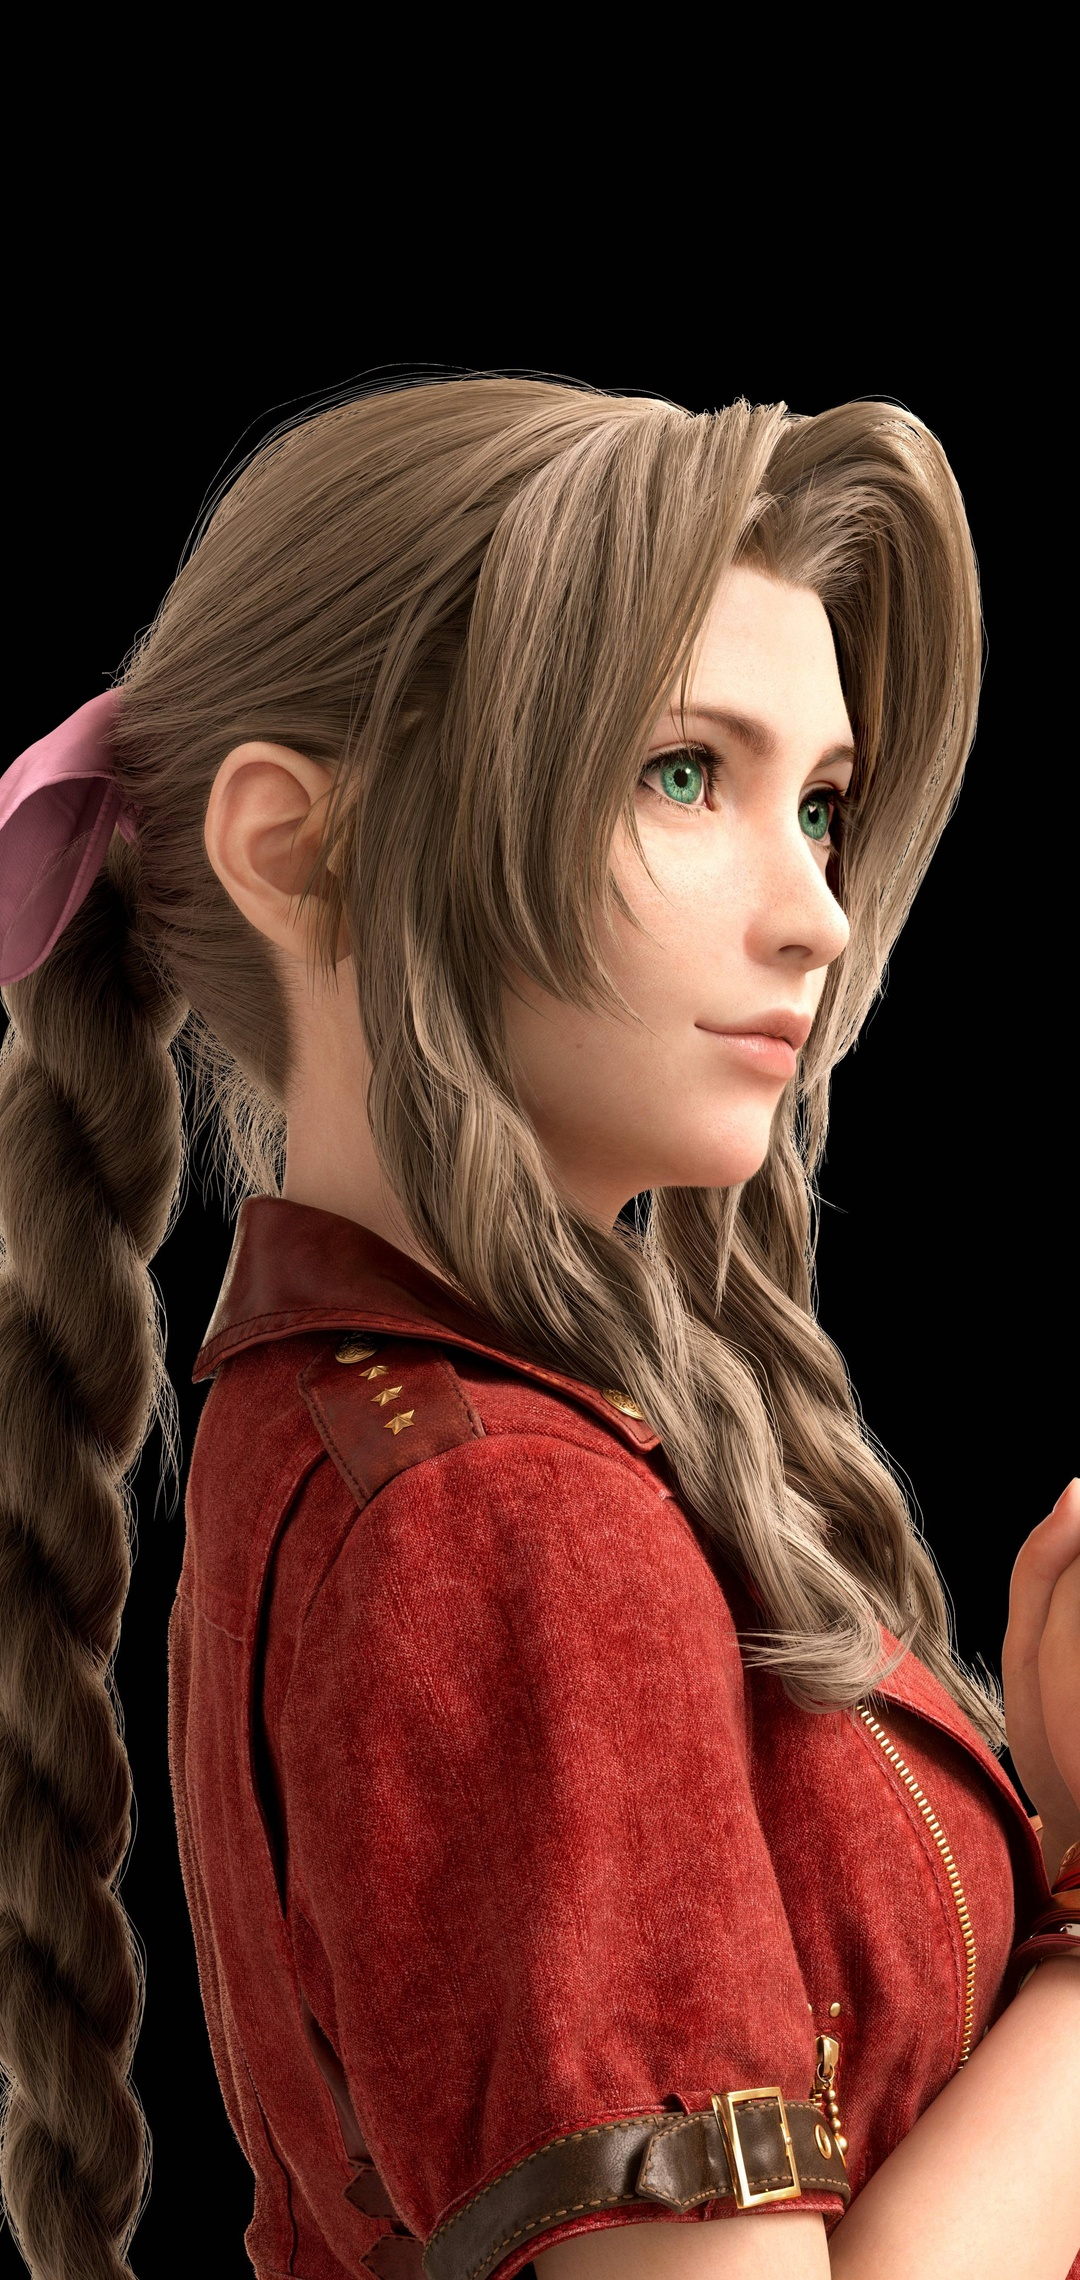 1080x2280 Aerith Tifa Final Fantasy Vii Remake 2019 8k One Plus 6 Huawei P20 Honor View 10 Vivo Y85 Oppo F7 Xiaomi Mi A2 Hd 4k Wallpapers Images Backgrounds Photos And Pictures